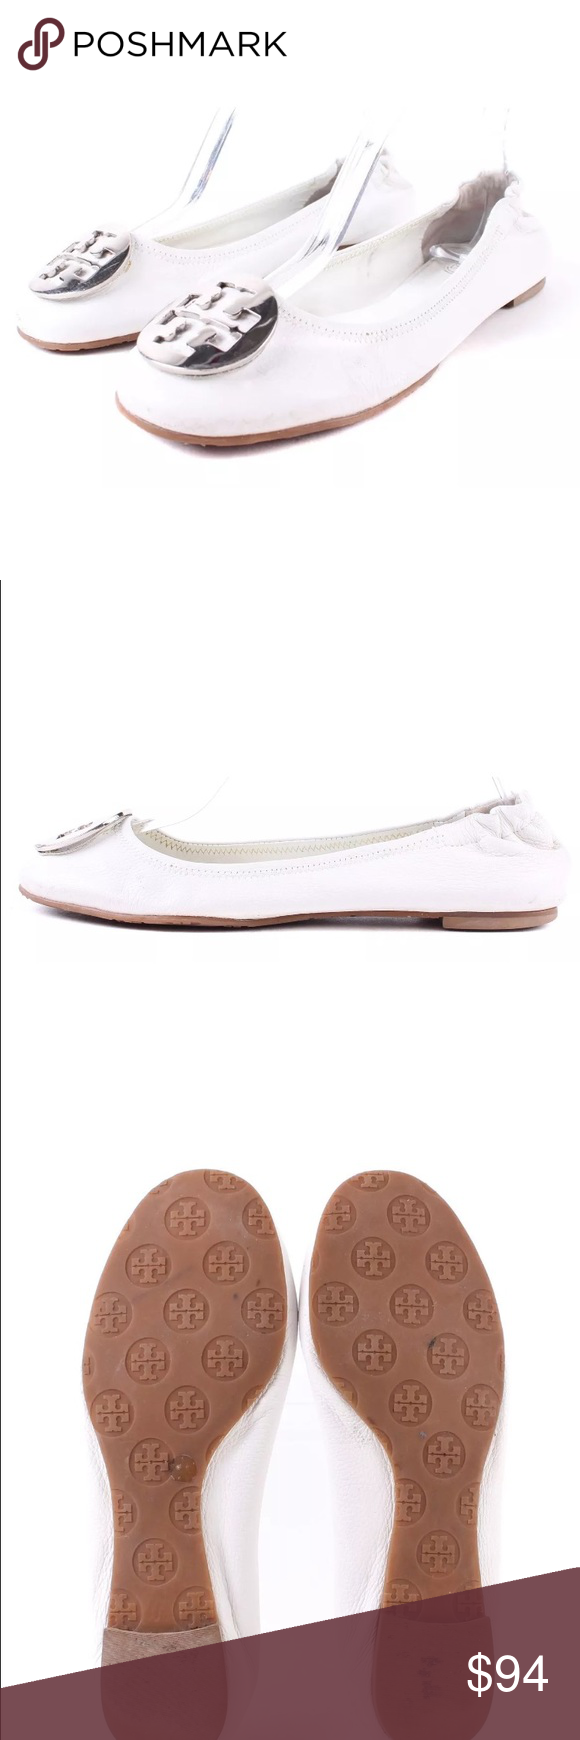 Tory Burch white w/ silver logo Reva flats Sz 8 These are an older production, but only light worn. They fit true to a size 8 in my opinion, my light also work for an 8.5. No box no bag. FIRM PRICE Tory Burch Shoes Flats & Loafers